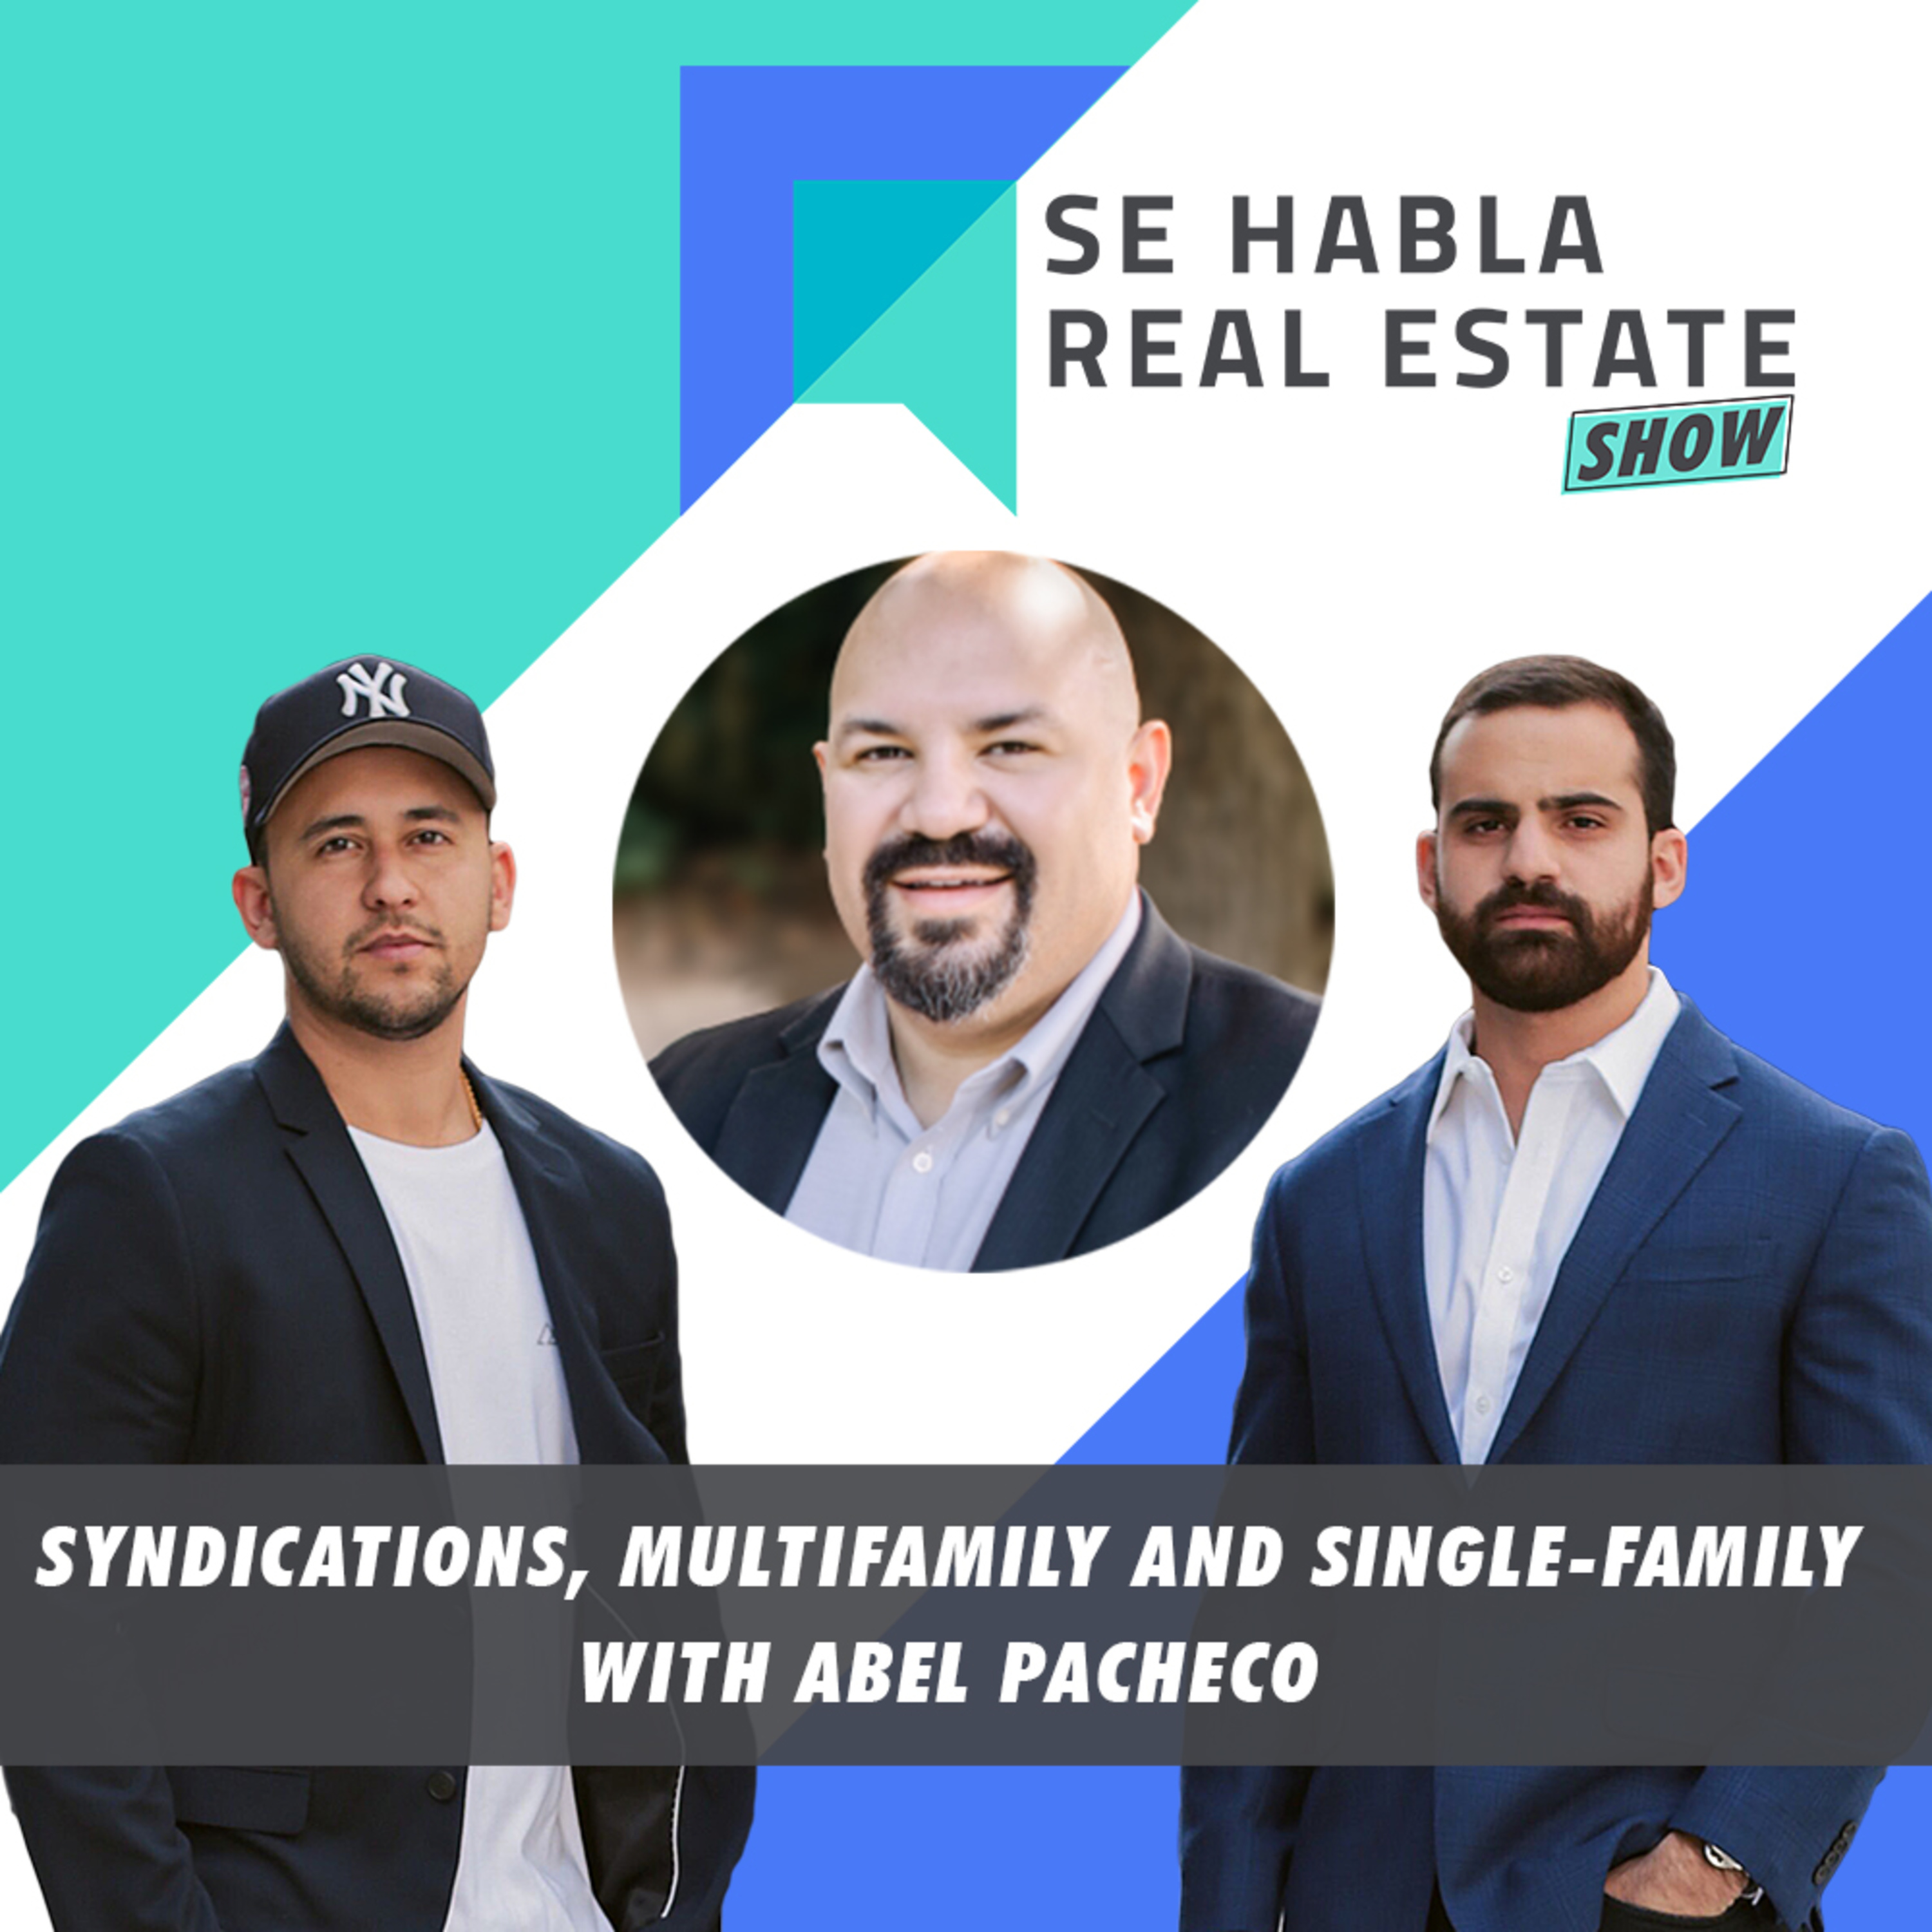 089 - SHRE: Syndications, Multifamily and Single-Family with Abel Pacheco